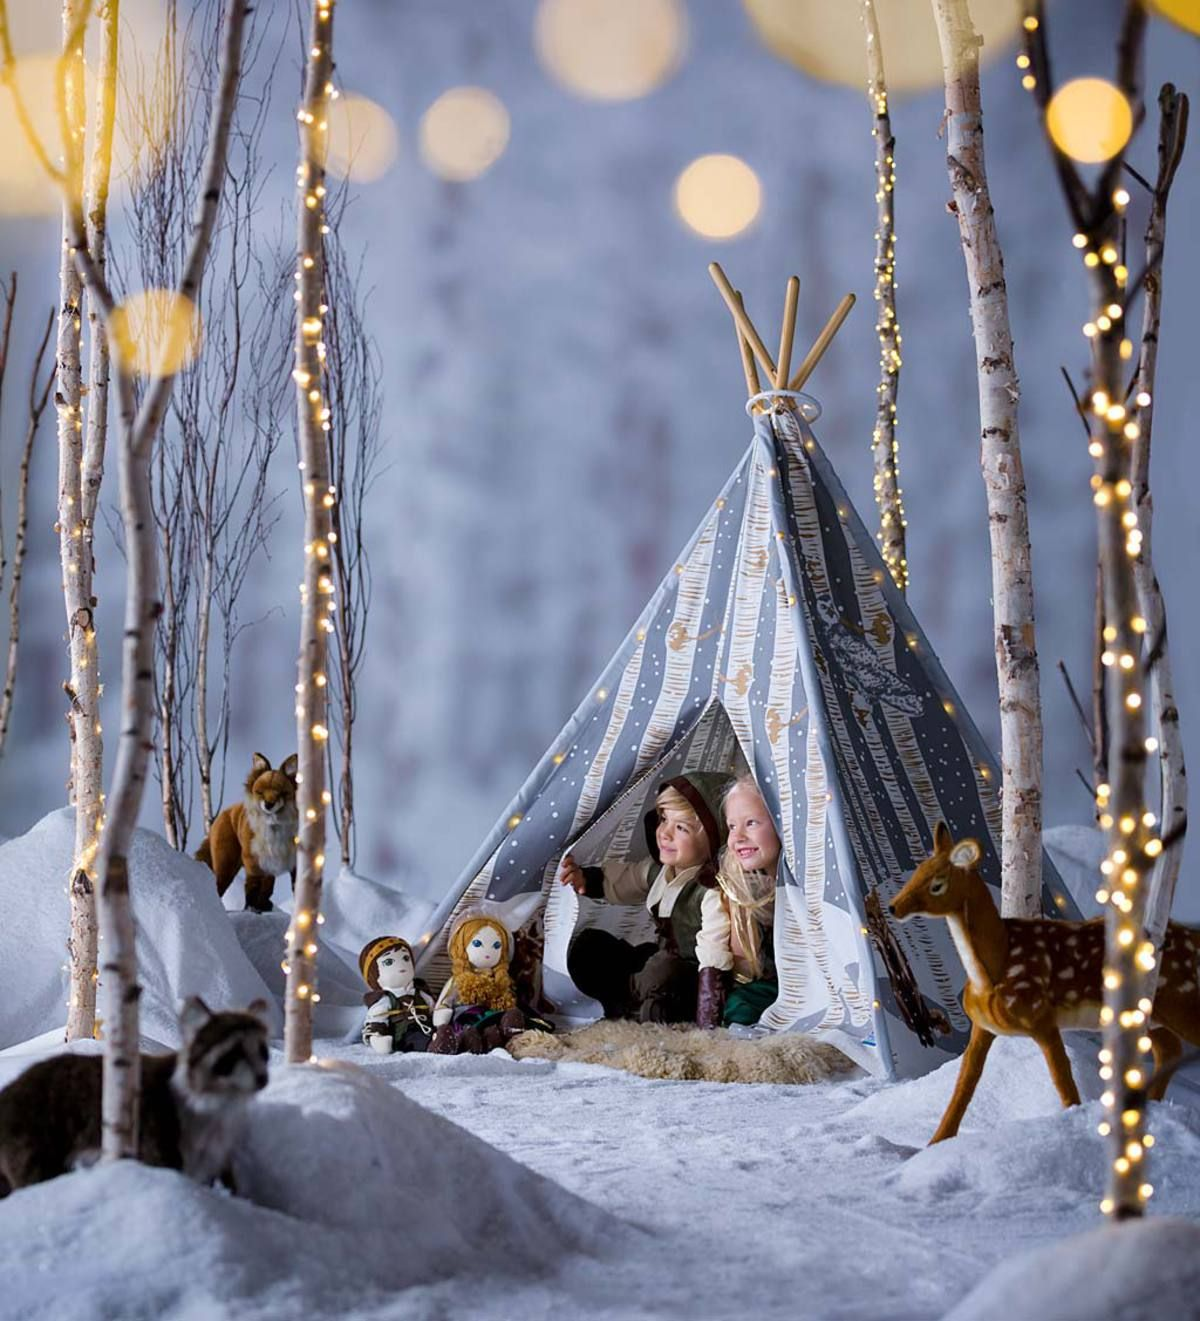 Our Winter Woodland 4Pole Teepee is made from cotton and